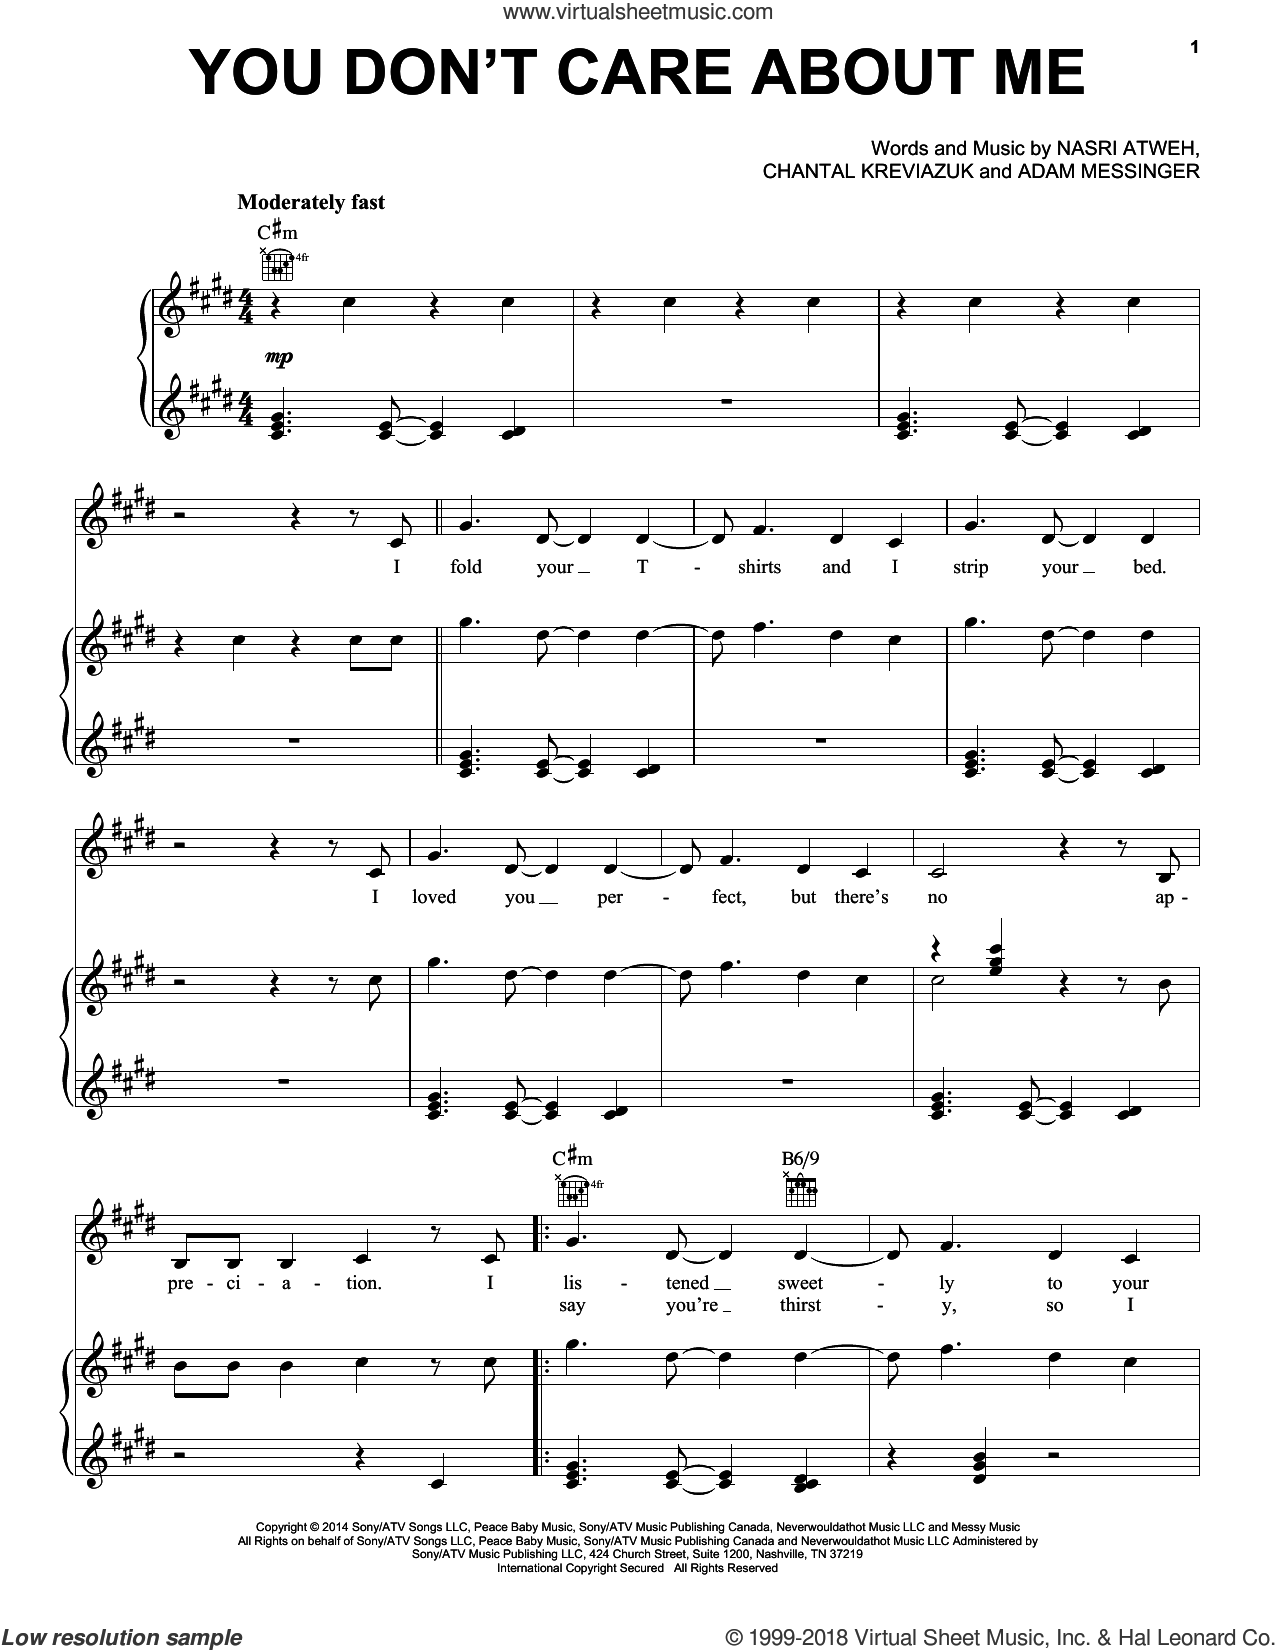 You Don't Care About Me sheet music for voice, piano or guitar by Nasri Atweh, Shakira, Adam Messinger and Chantal Kreviazuk. Score Image Preview.